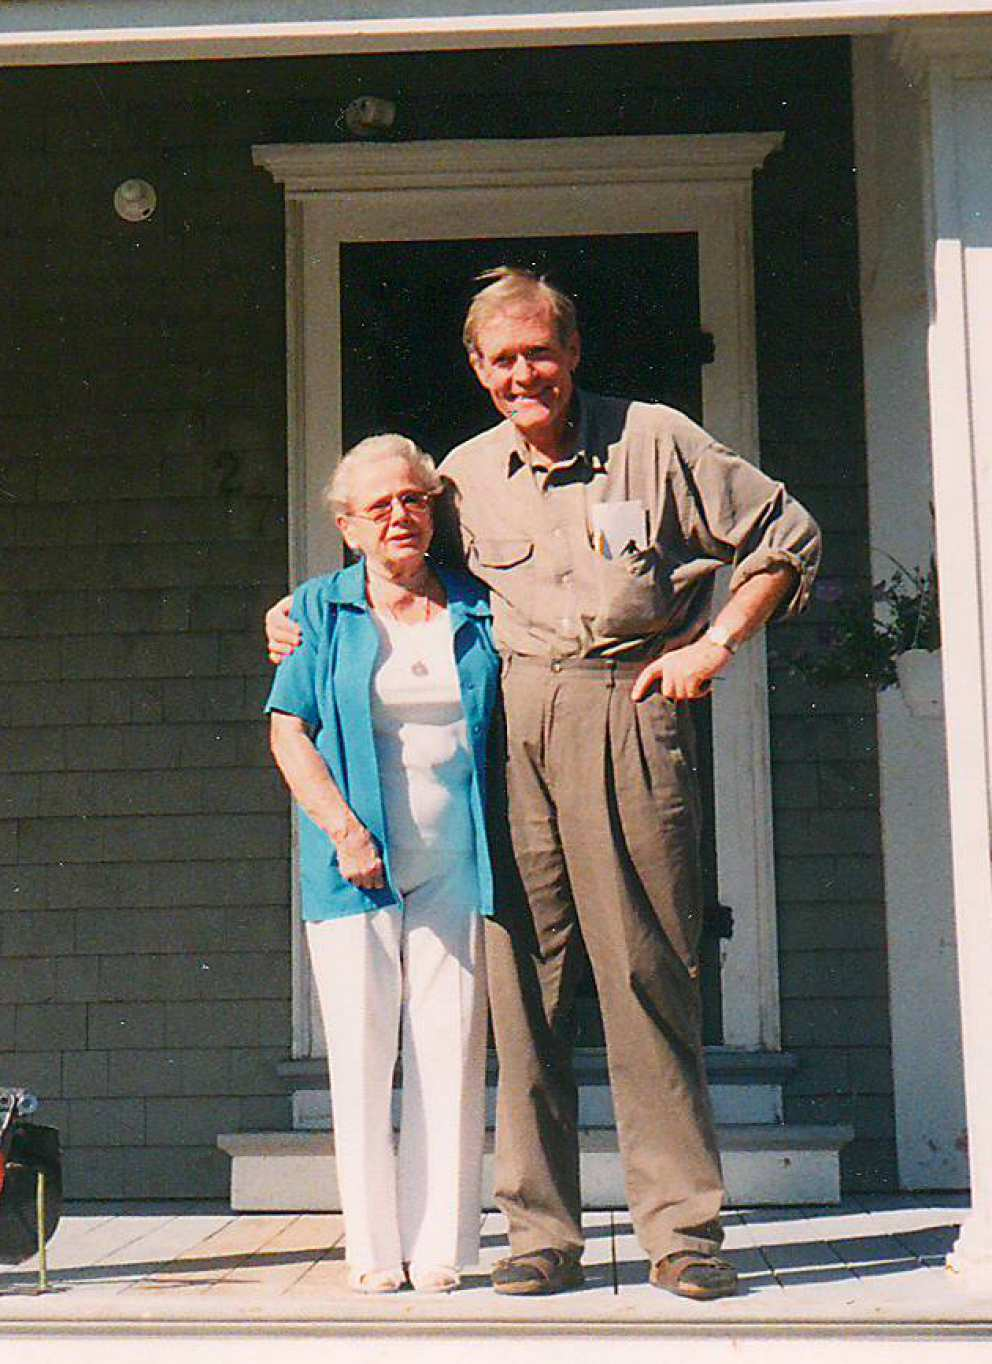 Ruth with good friend Gene Hart